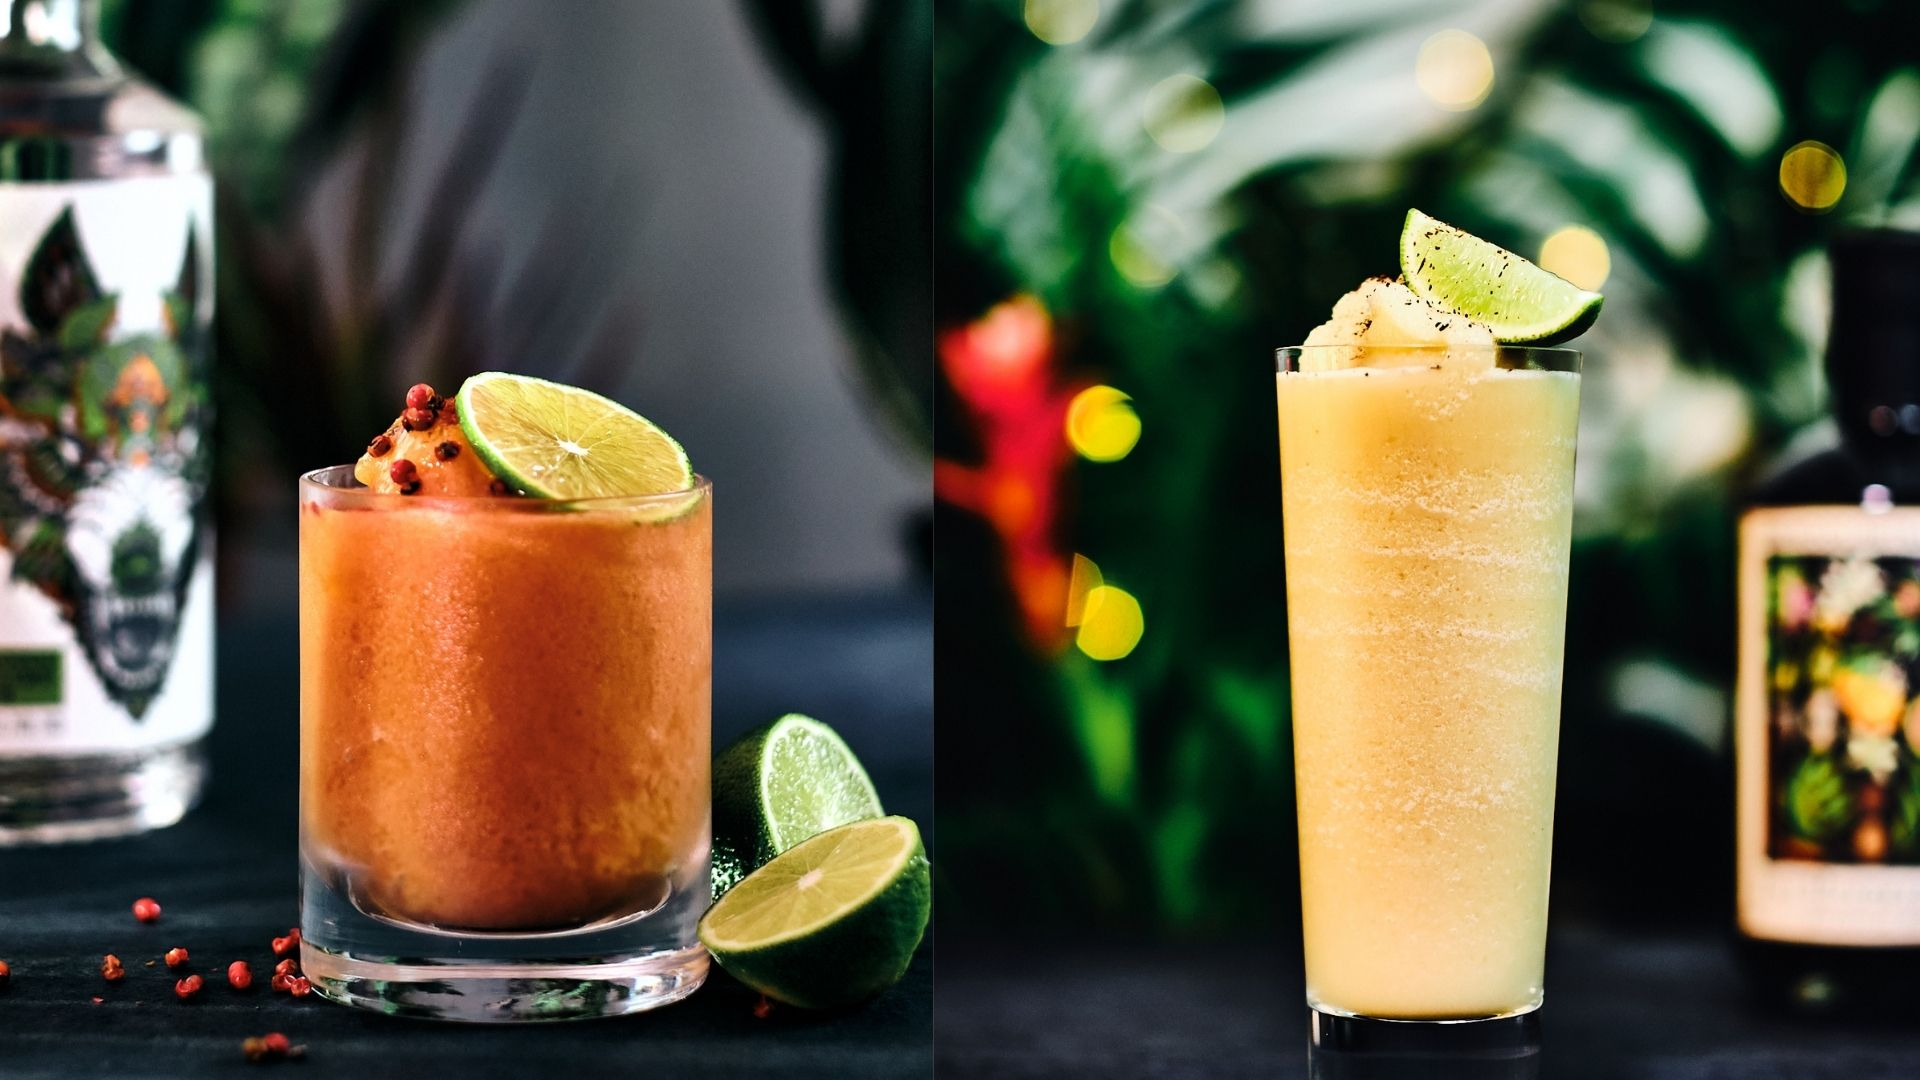 Try the Howlin' Wolf and Pina Colada Slushies at participating Brewdog's across London